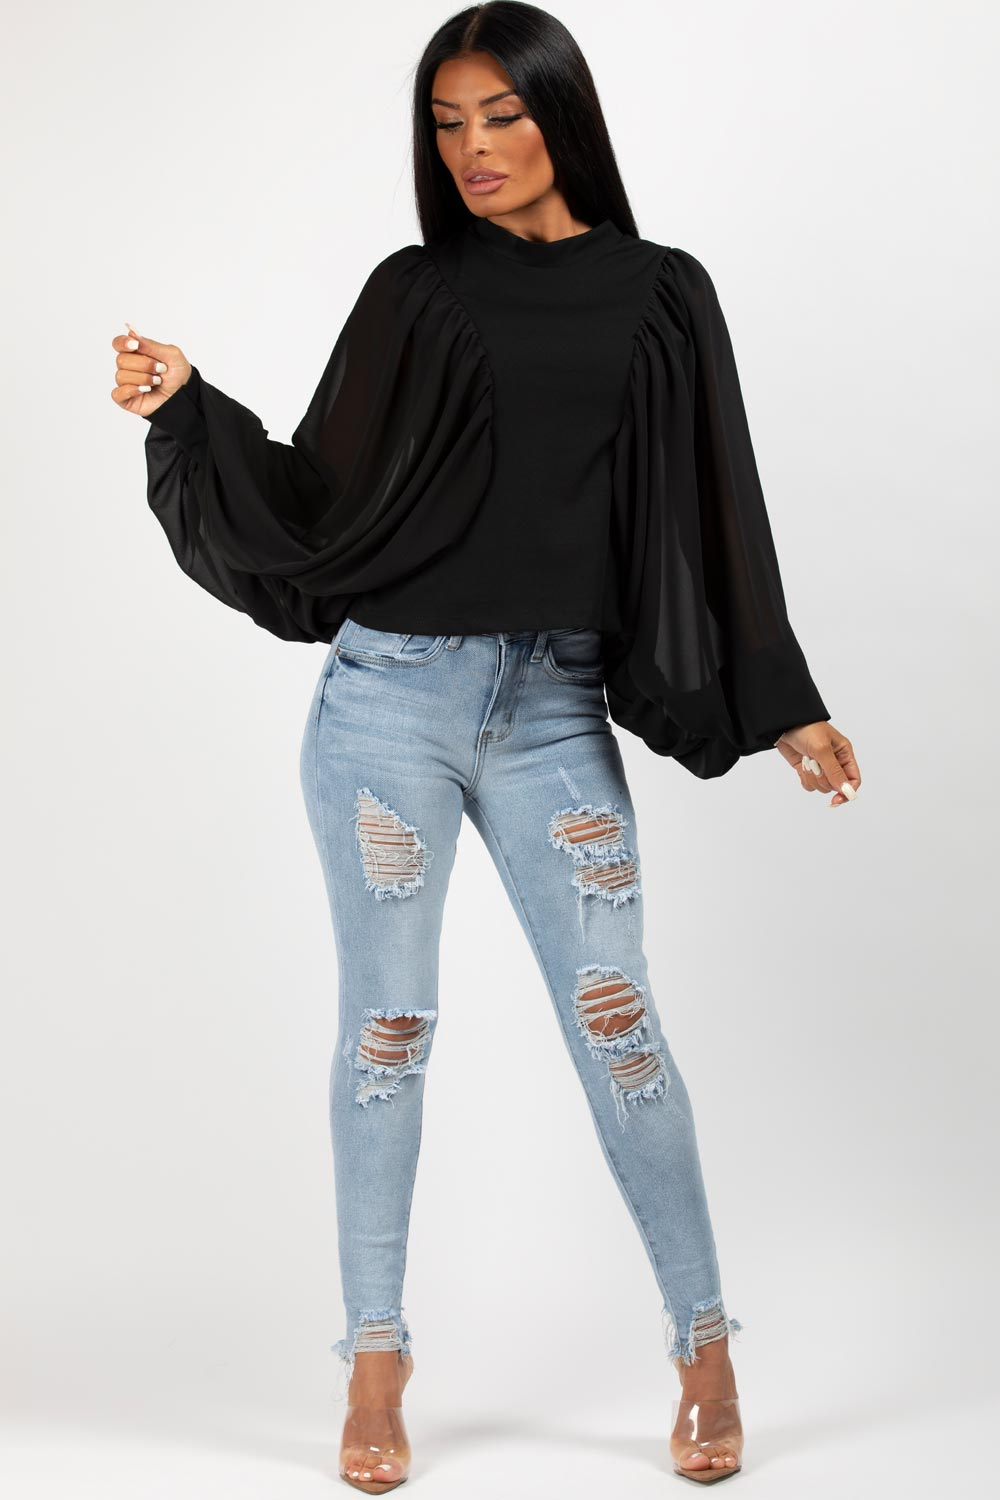 black high neck batwing top